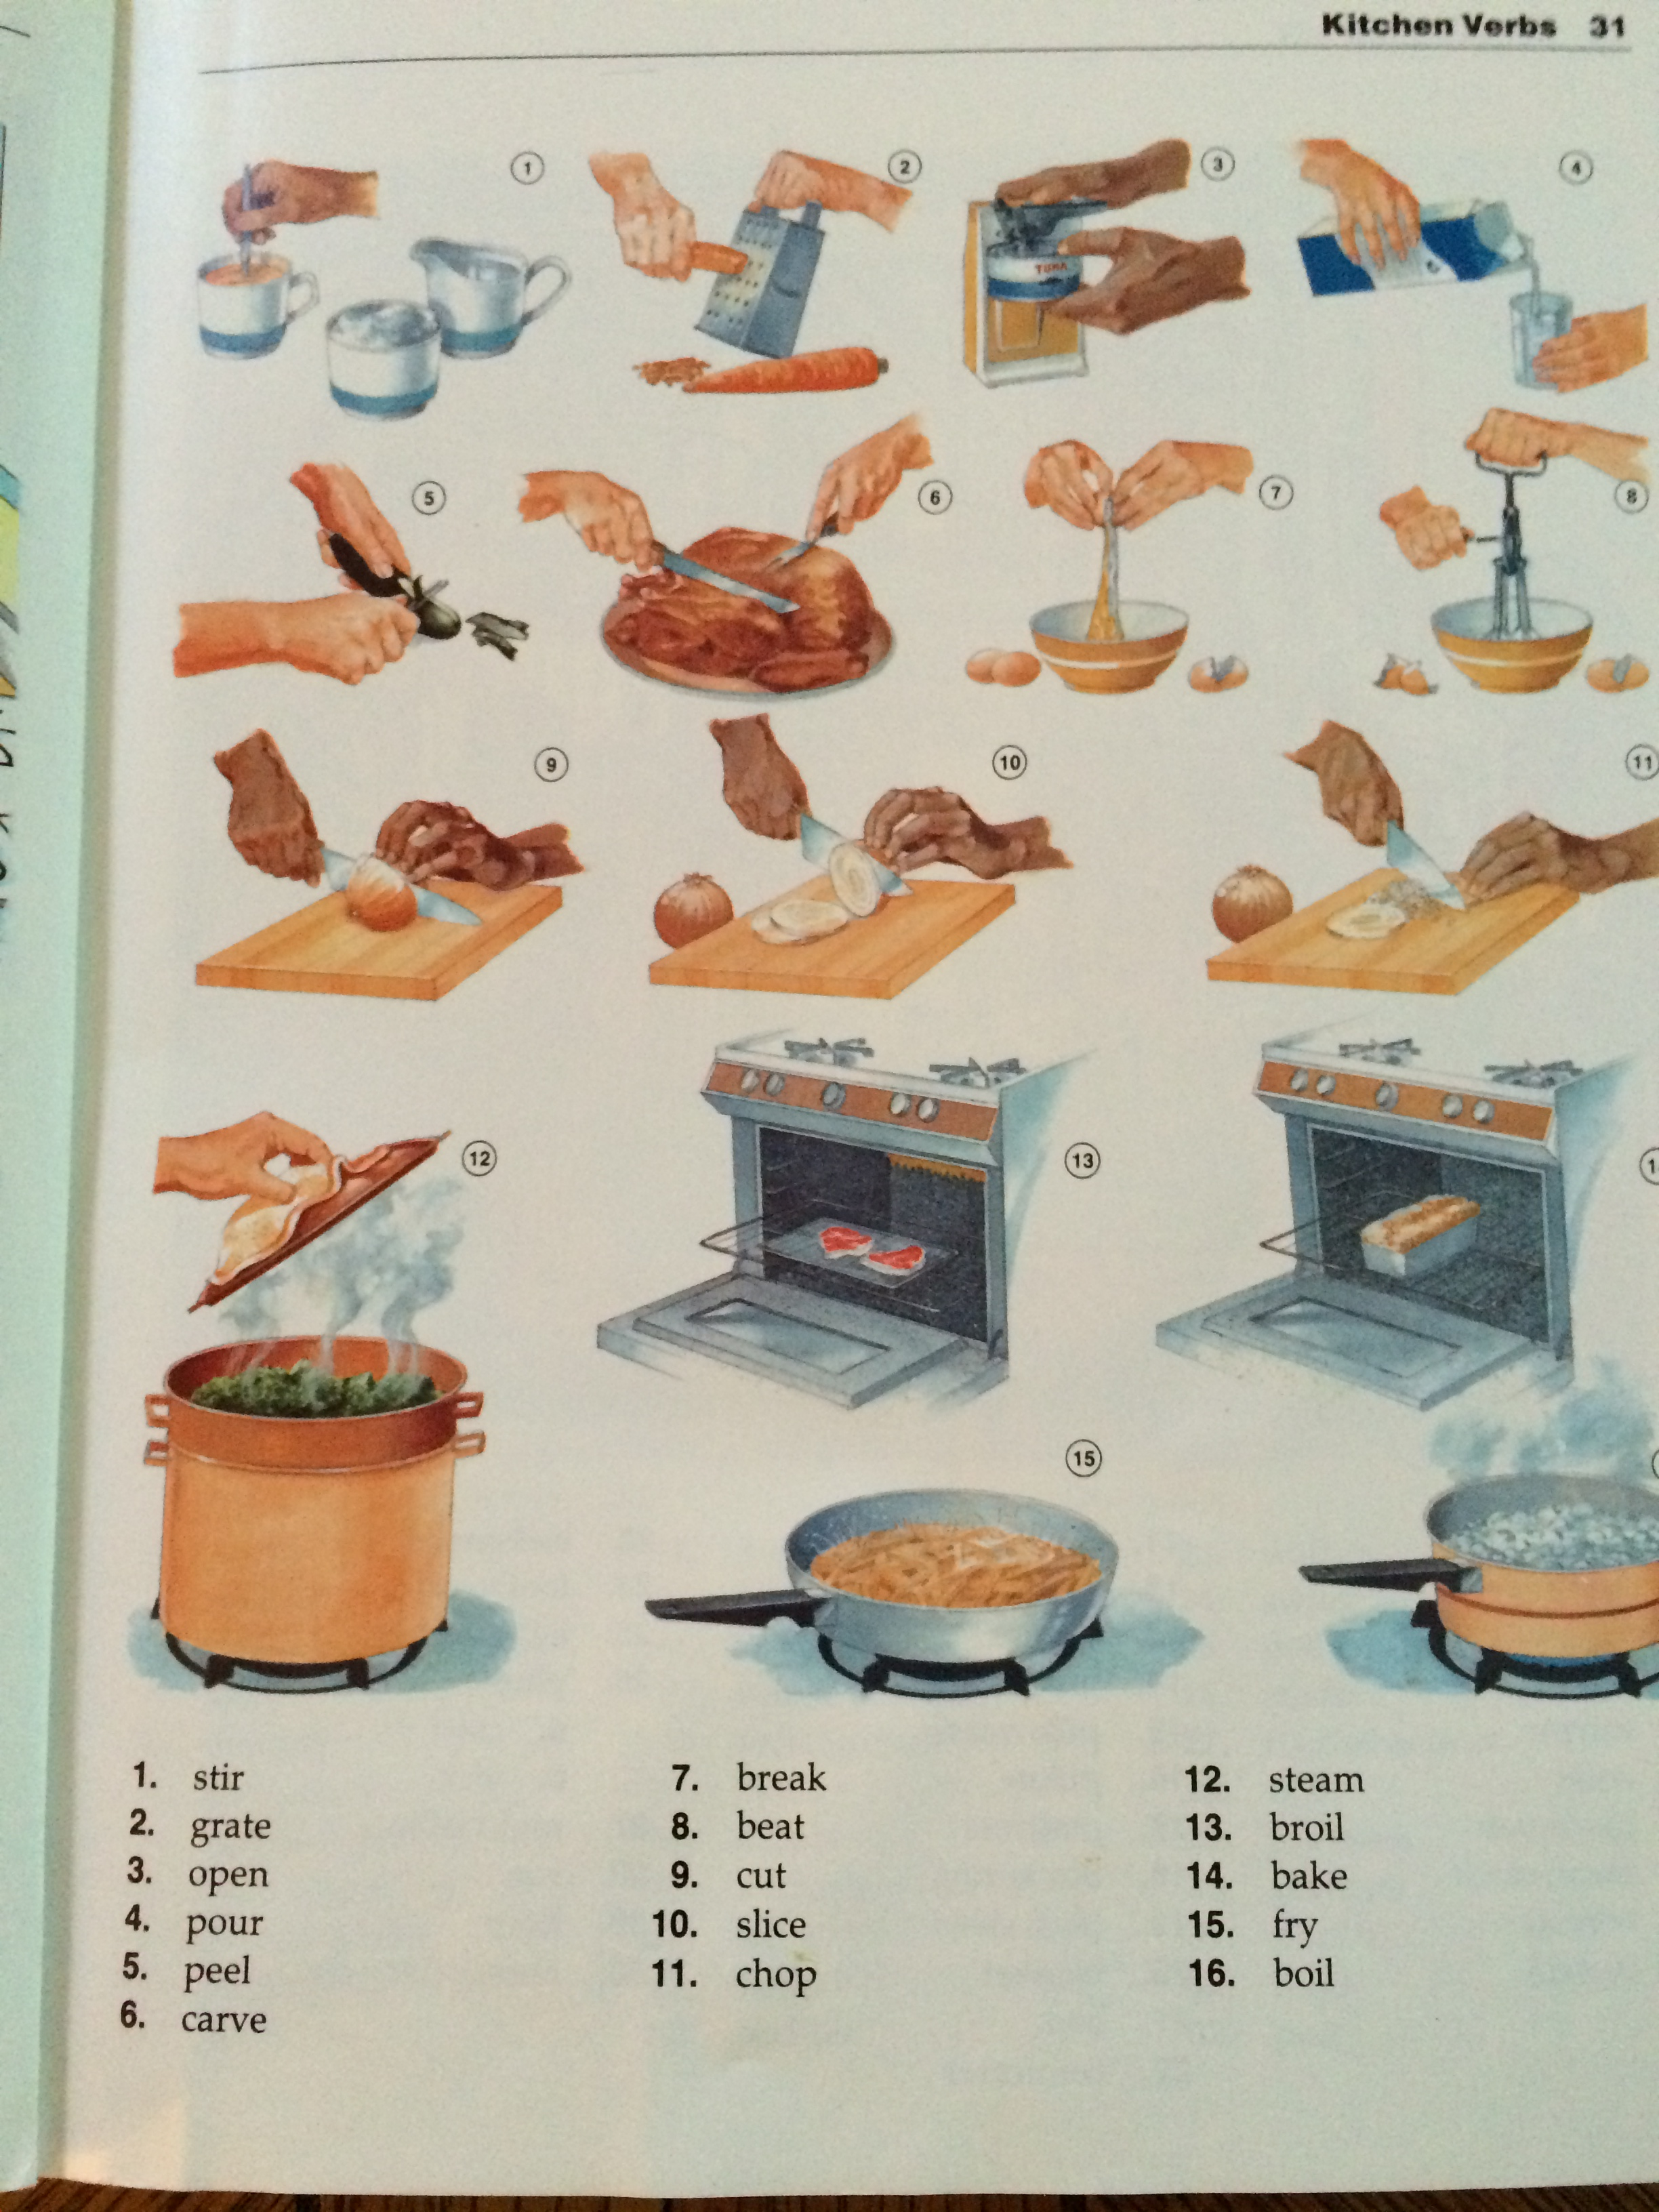 Cooking Verbs Words Sentences Verb Tenses Questions